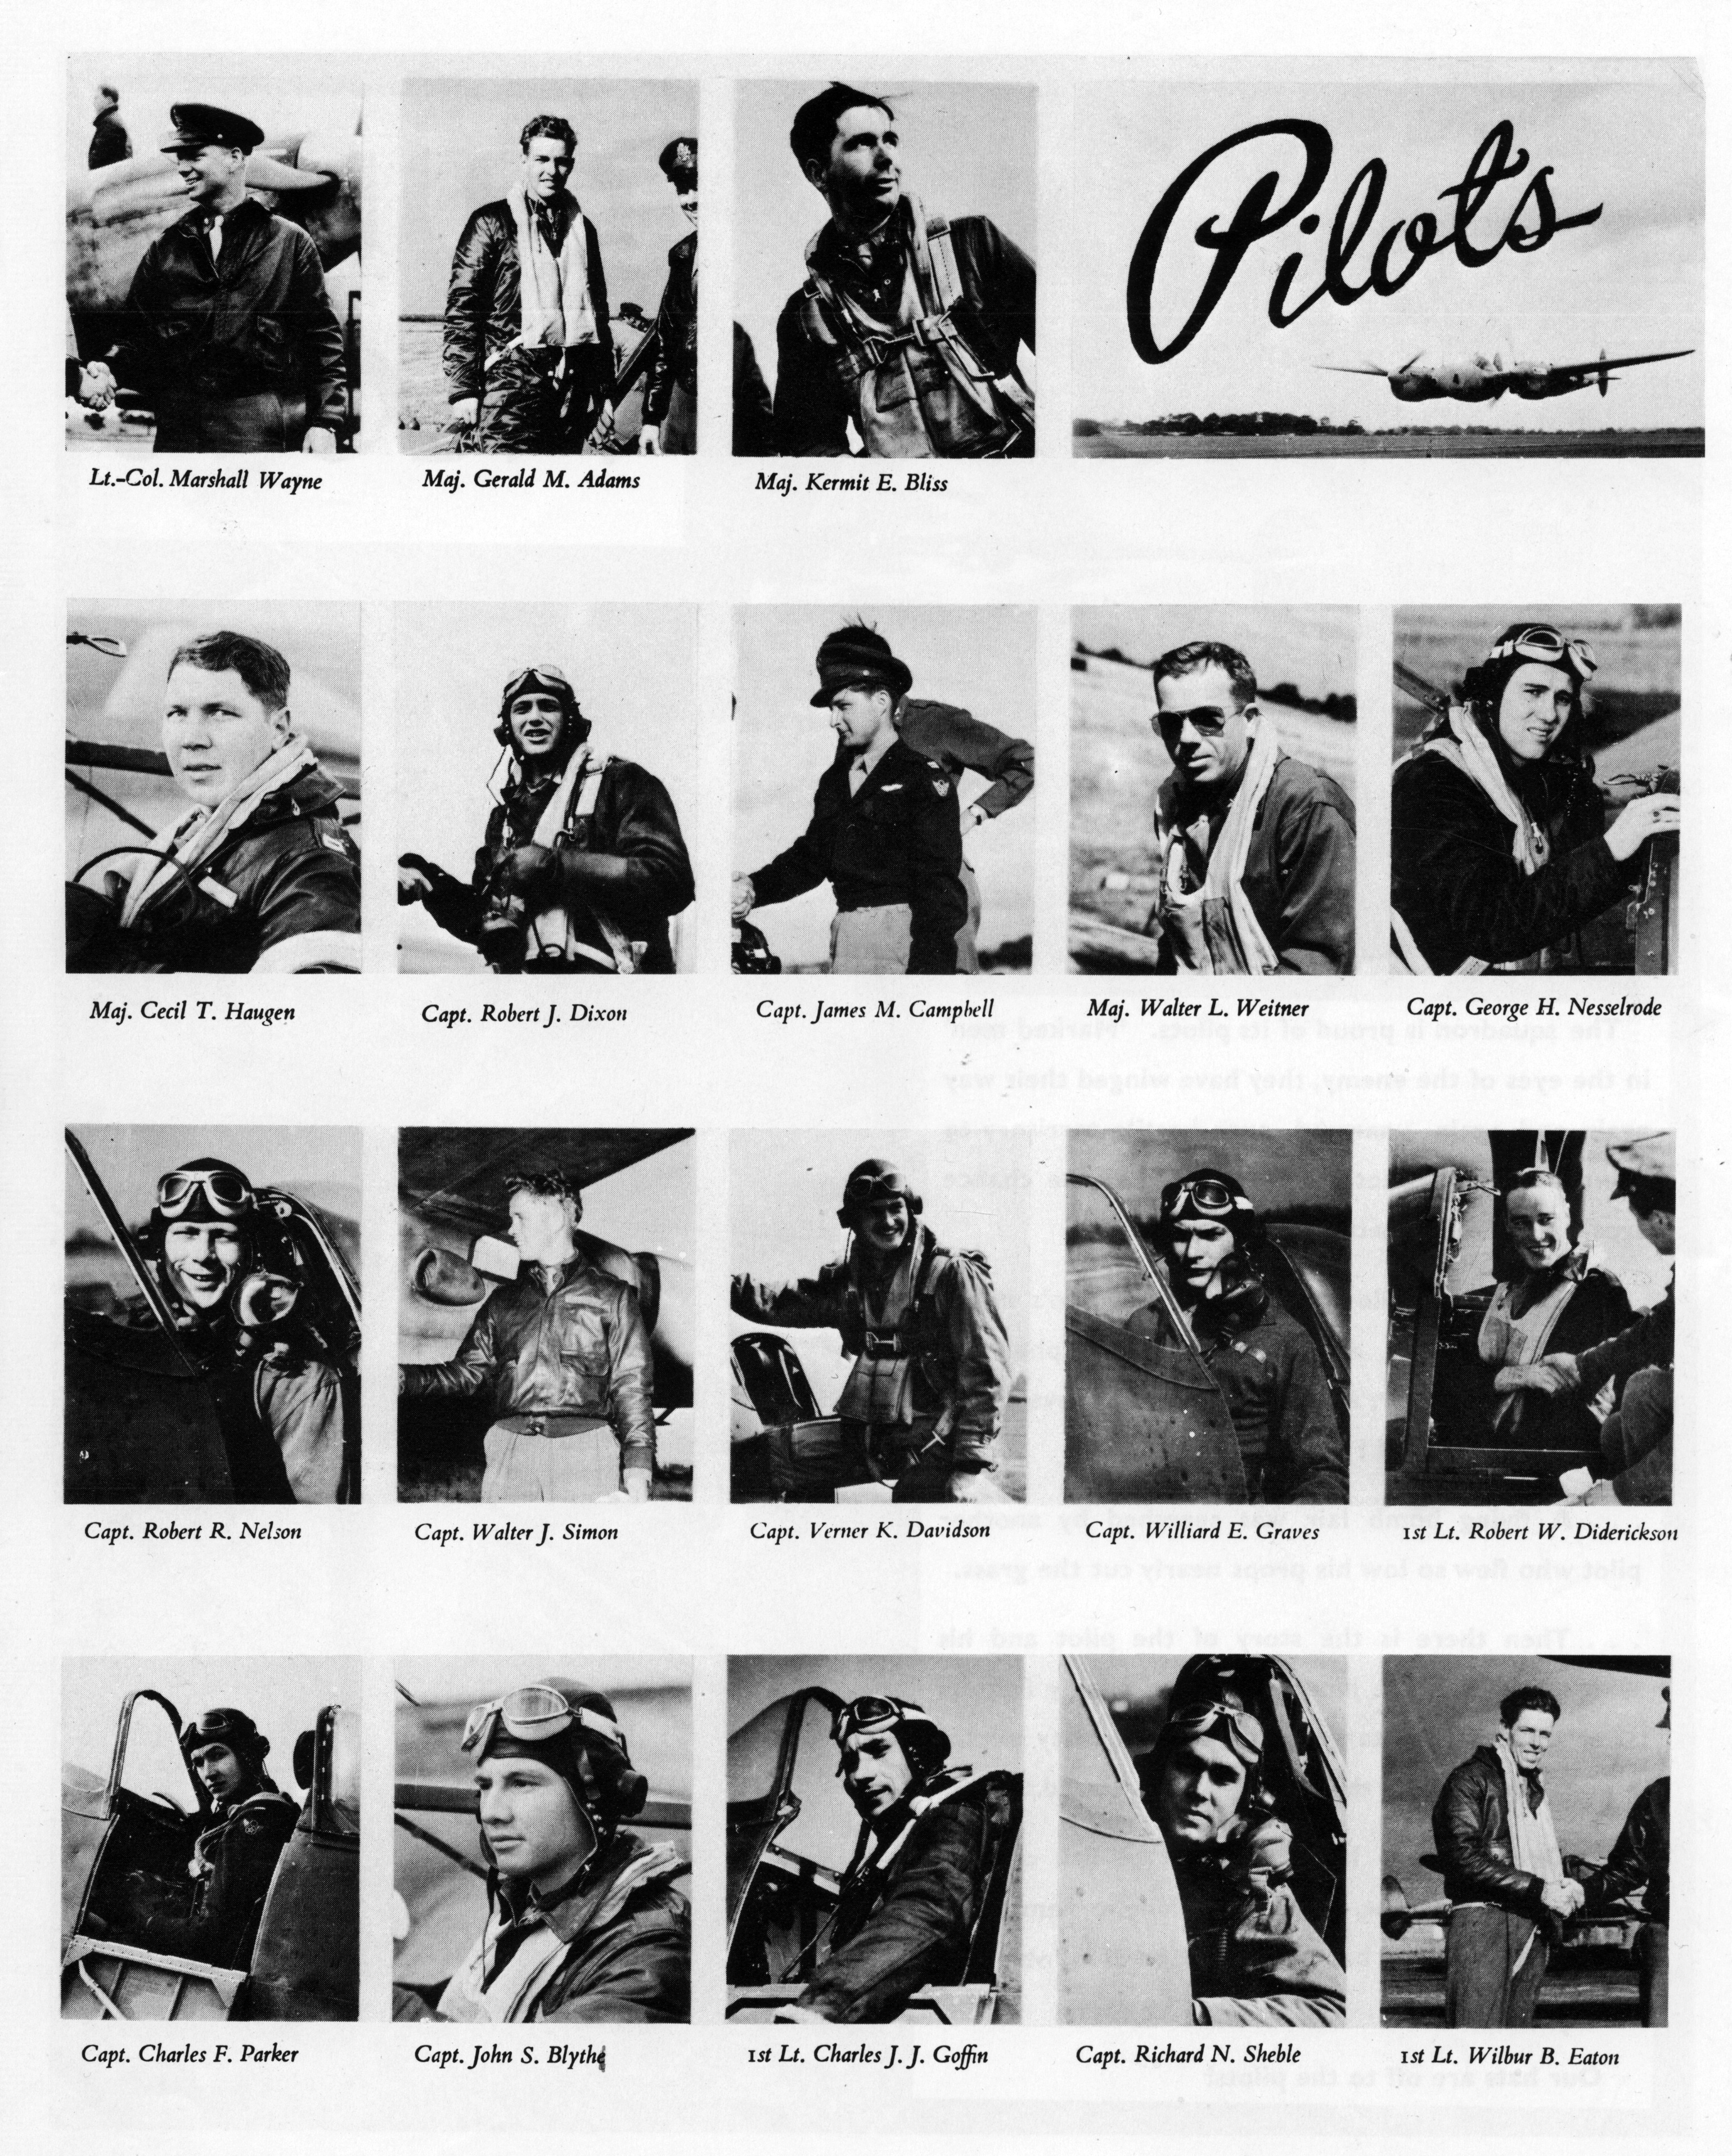 Aircrew 7th Photo Group 22nd Fighter Squadron Pilots Mount Farm Oxfordshire UK 1944 03